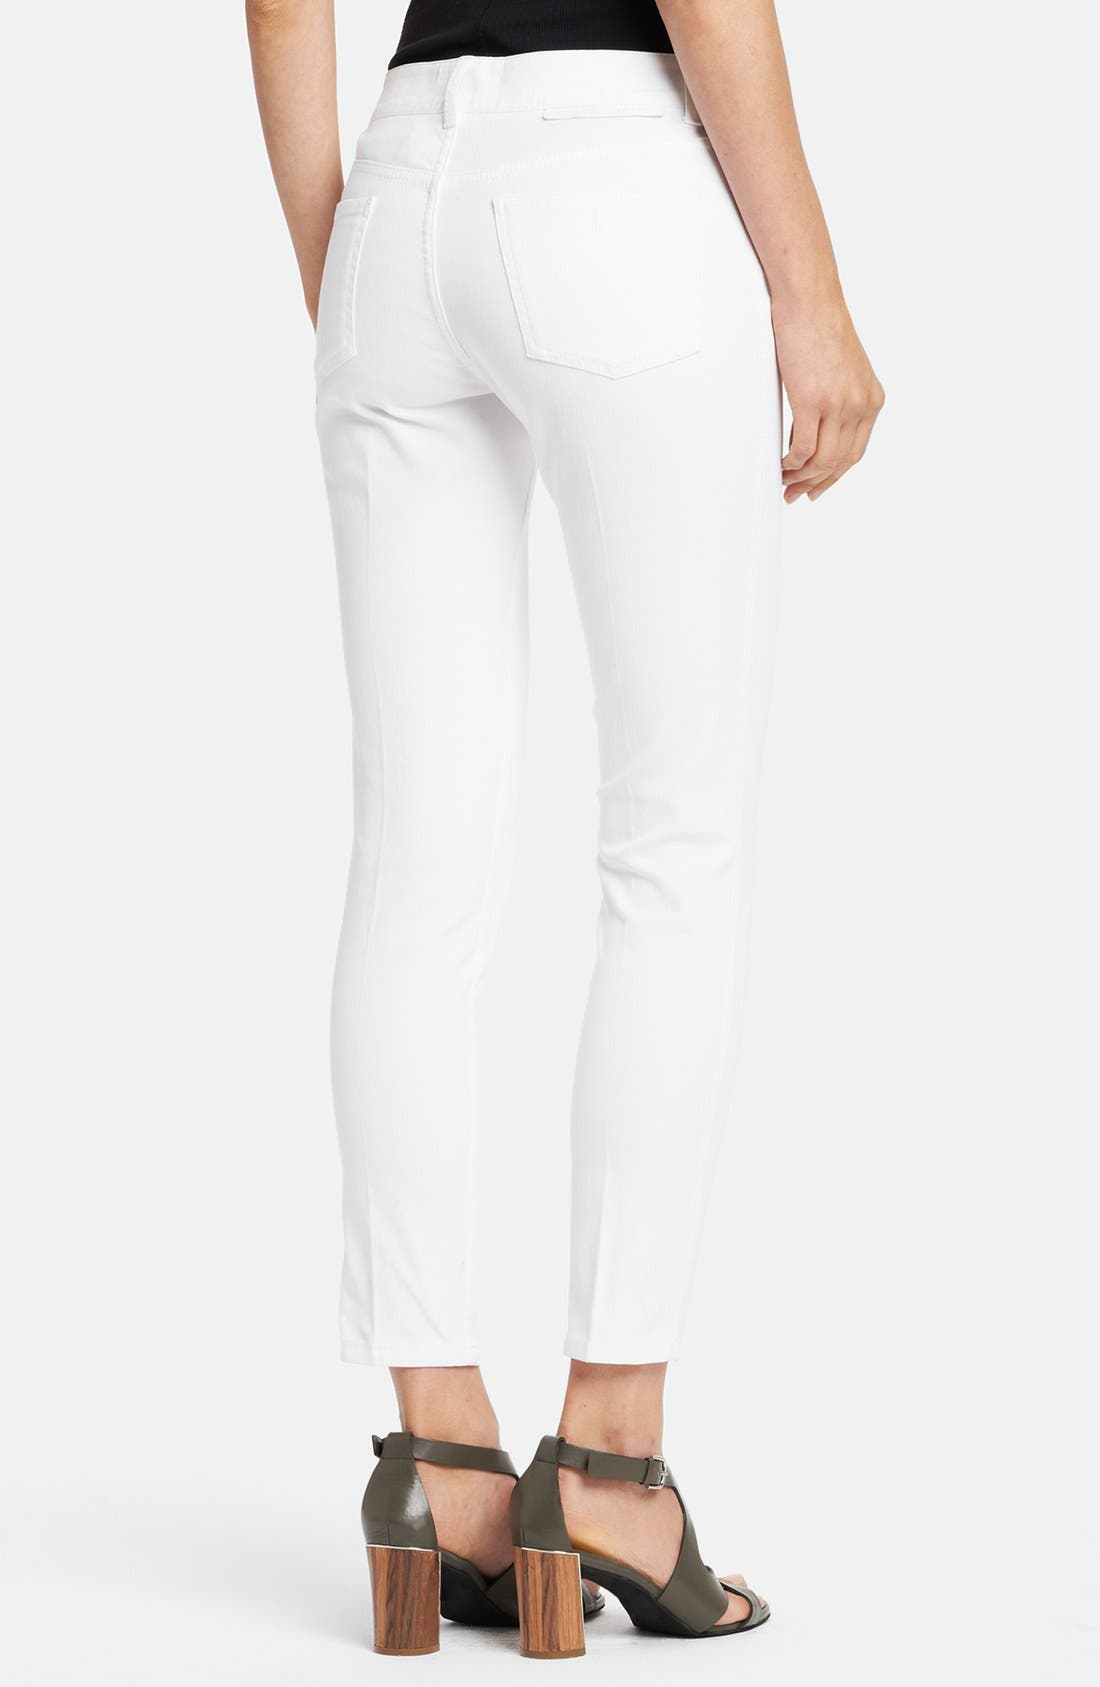 Alternate Image 2  - Stella McCartney 'Simone' Skinny Ankle Grazer Jeans